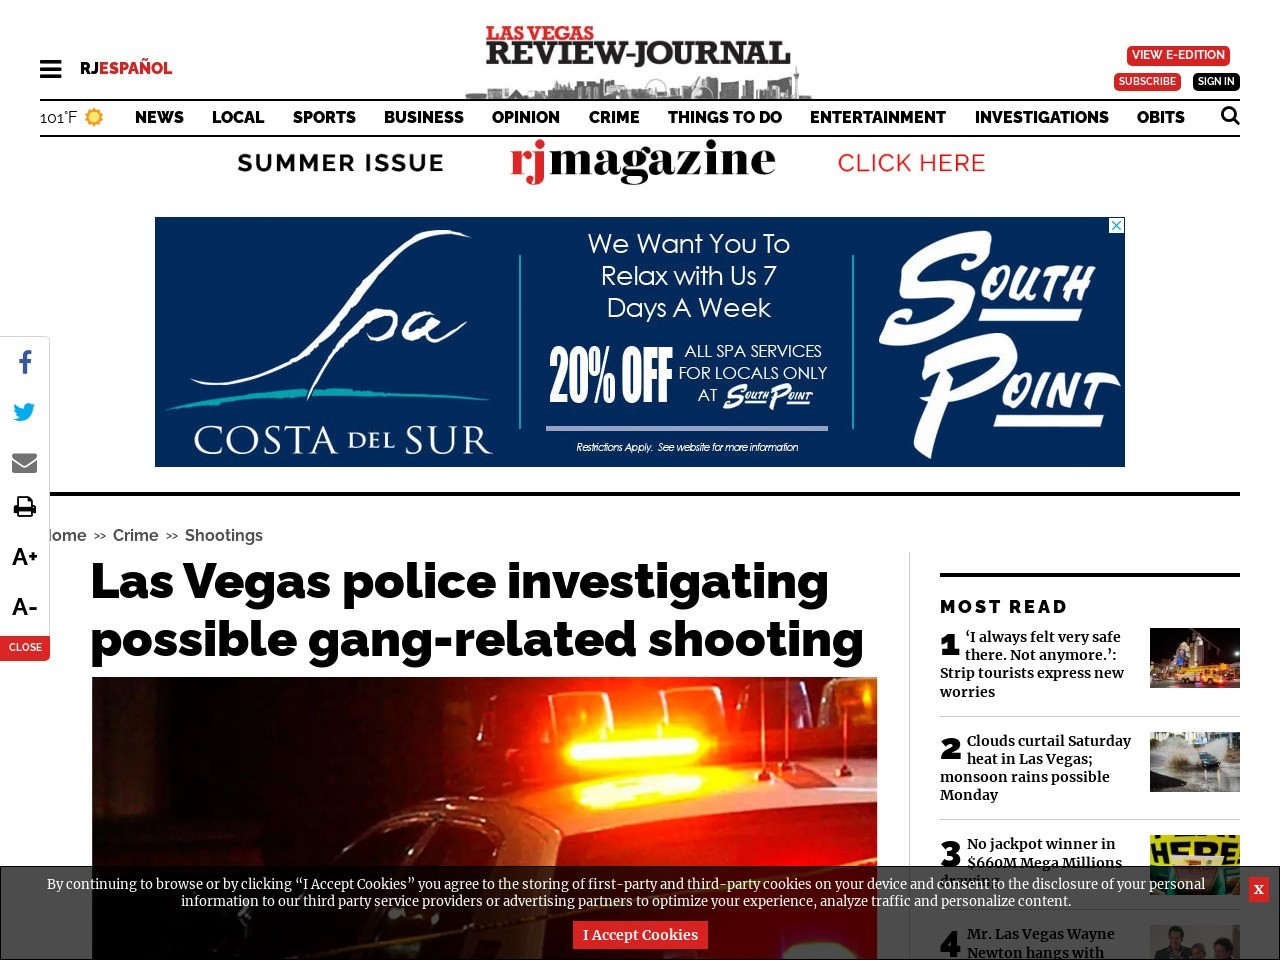 Las Vegas police investigating possible gang-related shooting